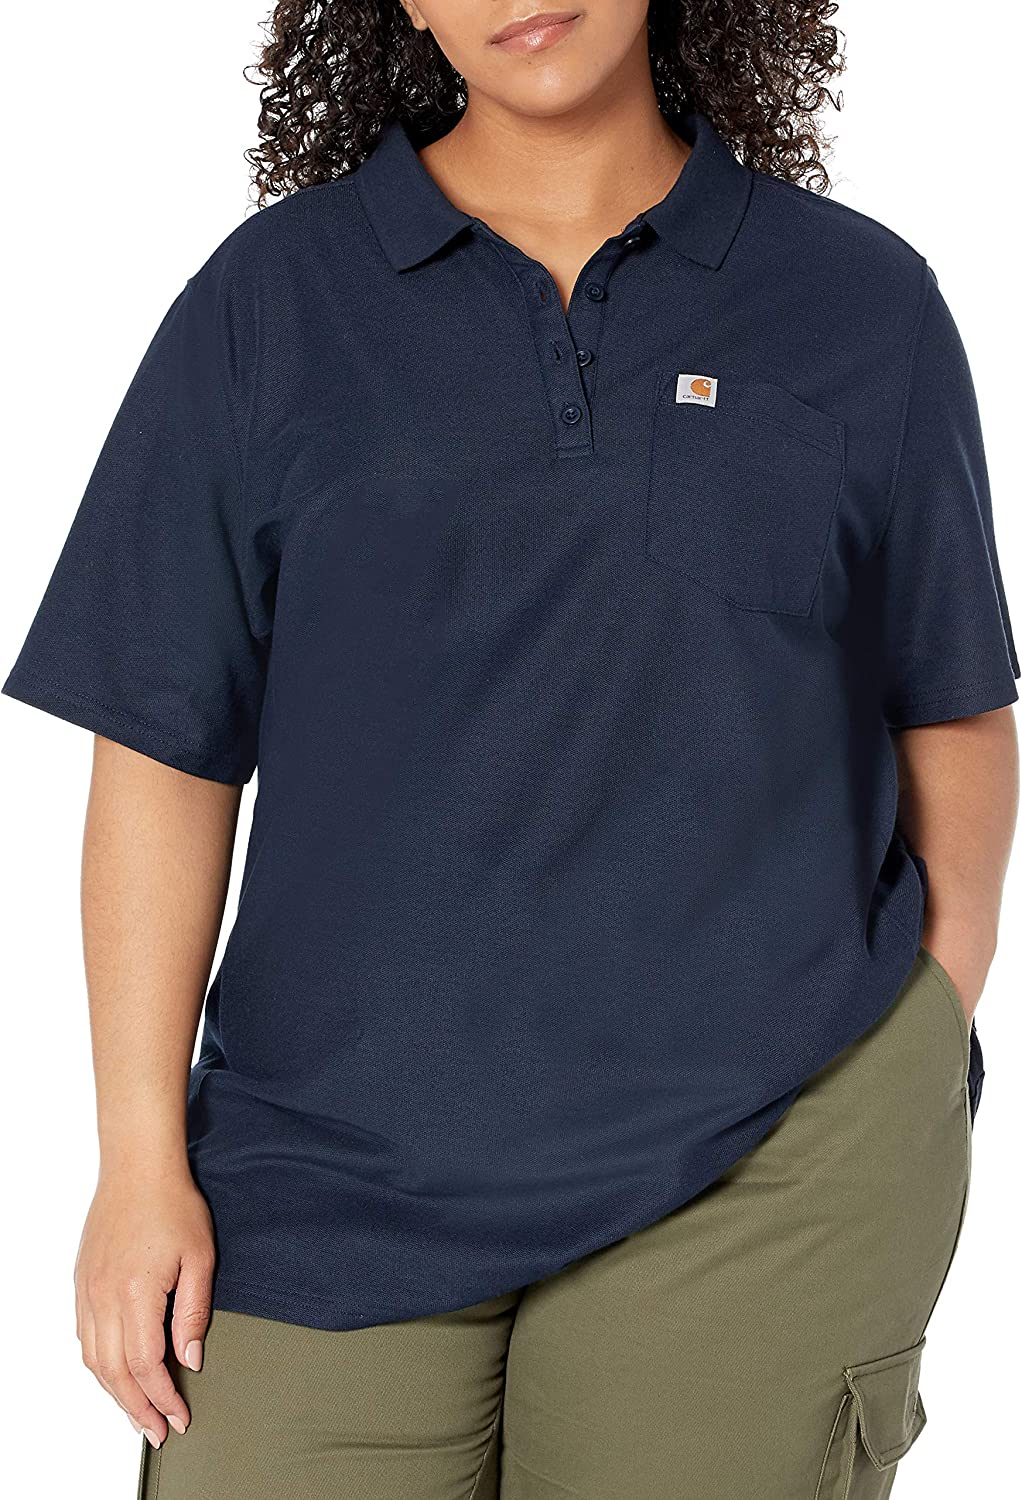 Navy Carhartt Womens Plus Size Relaxed Fit Short-Sleeve Polo 2X